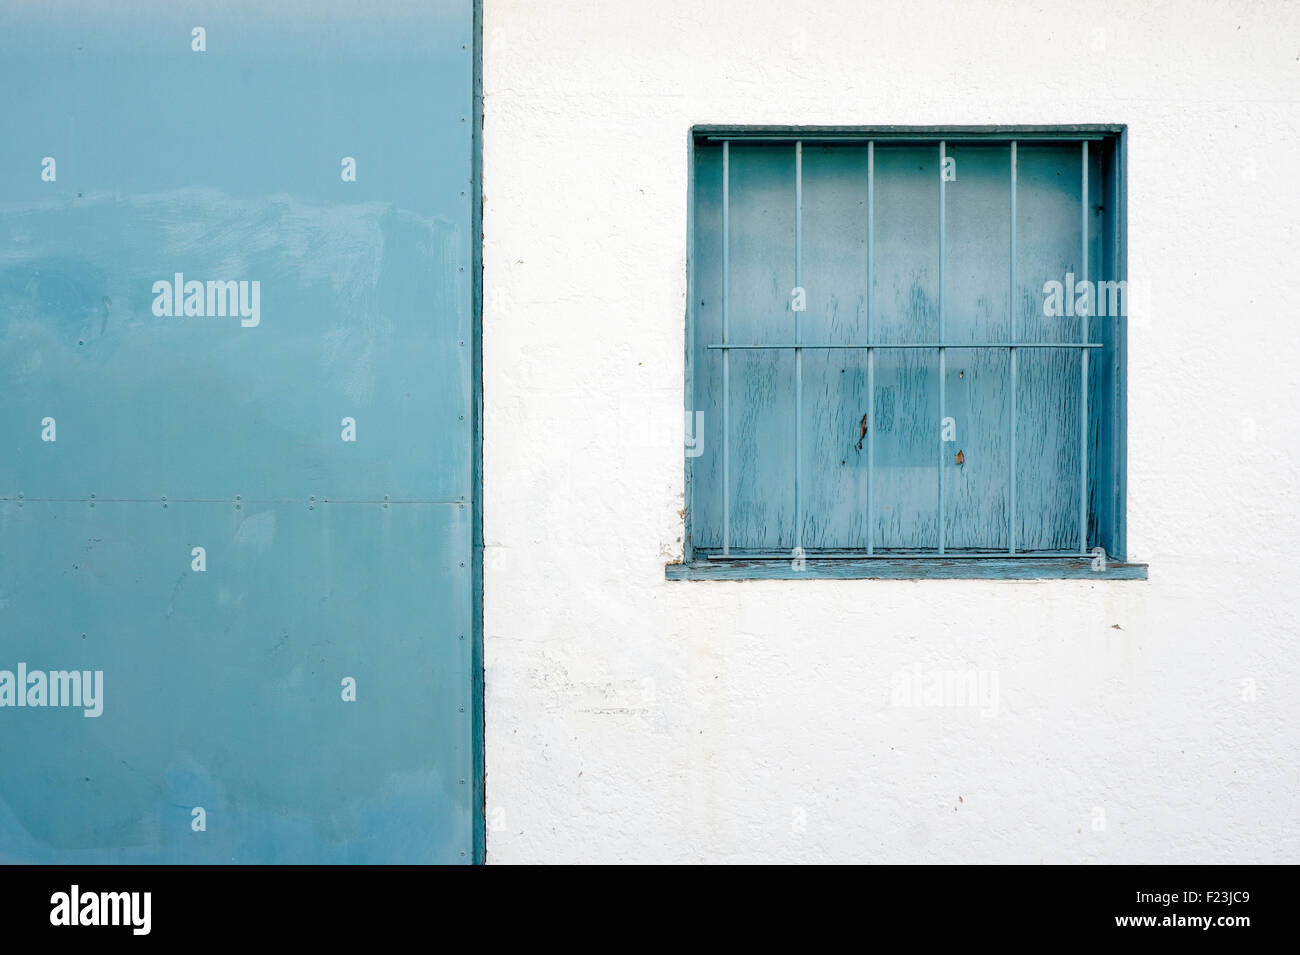 blue-barred-square-window-against-a-whit